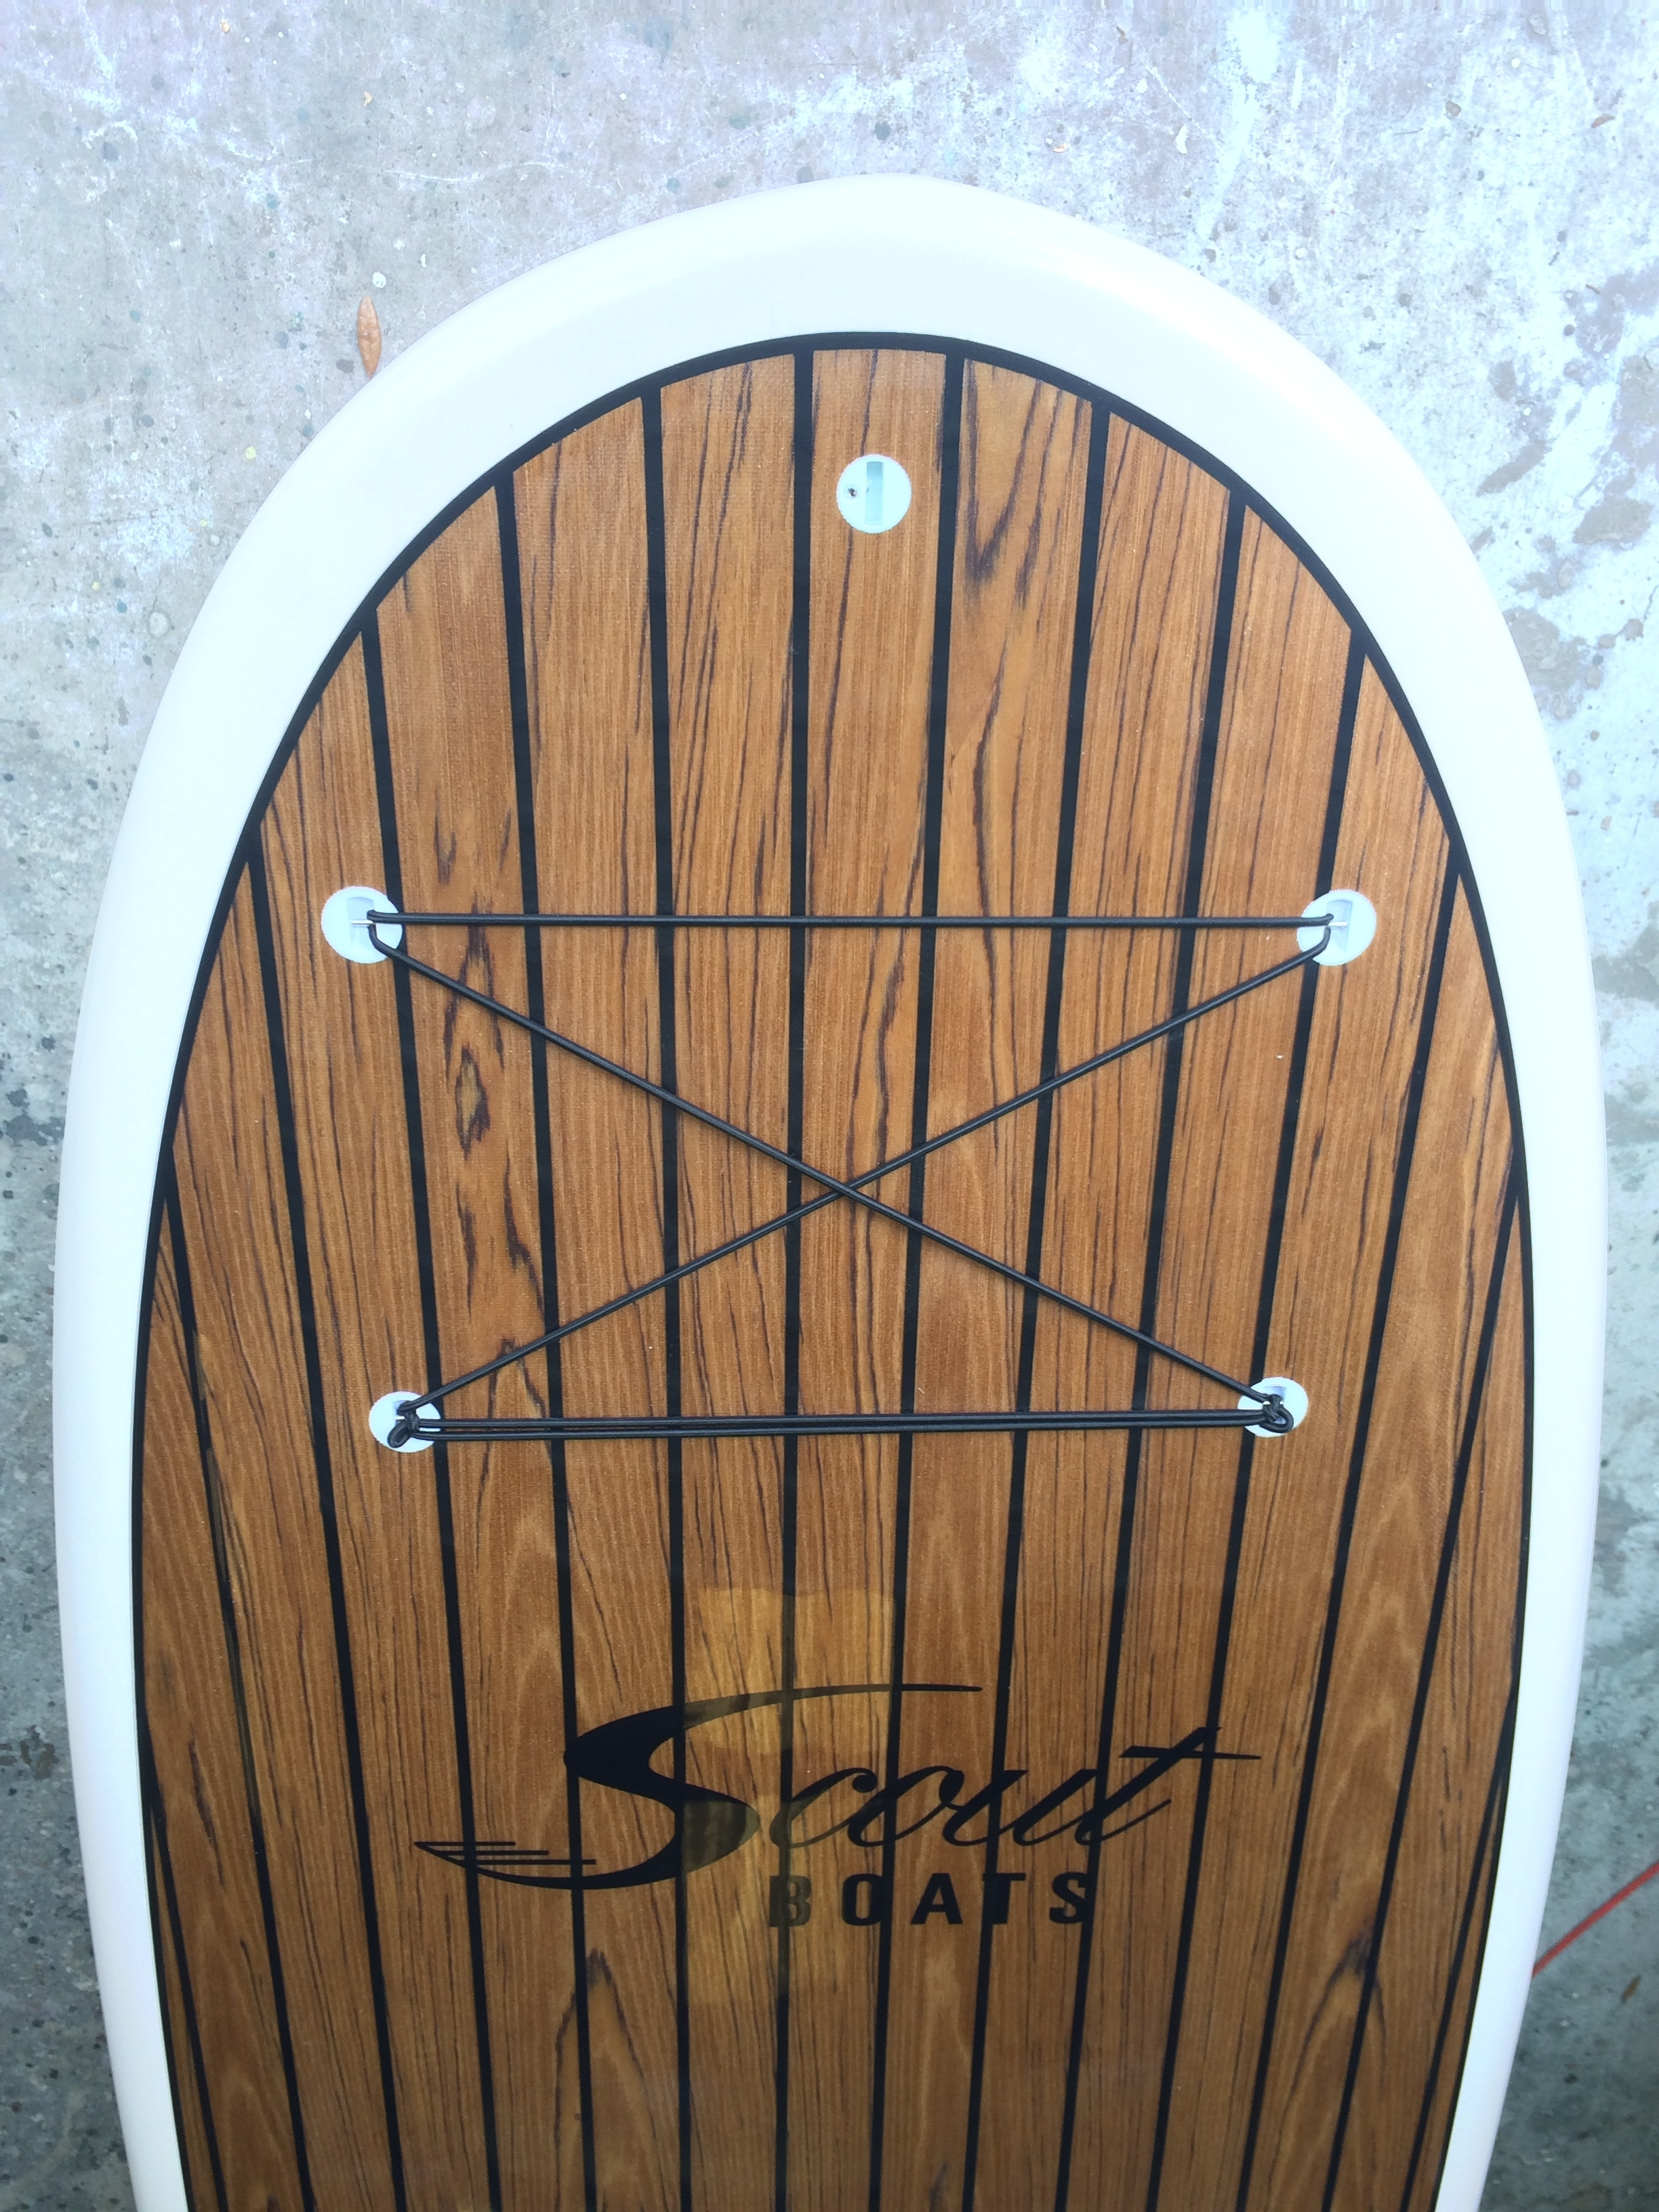 Scout Boats by JB Boards